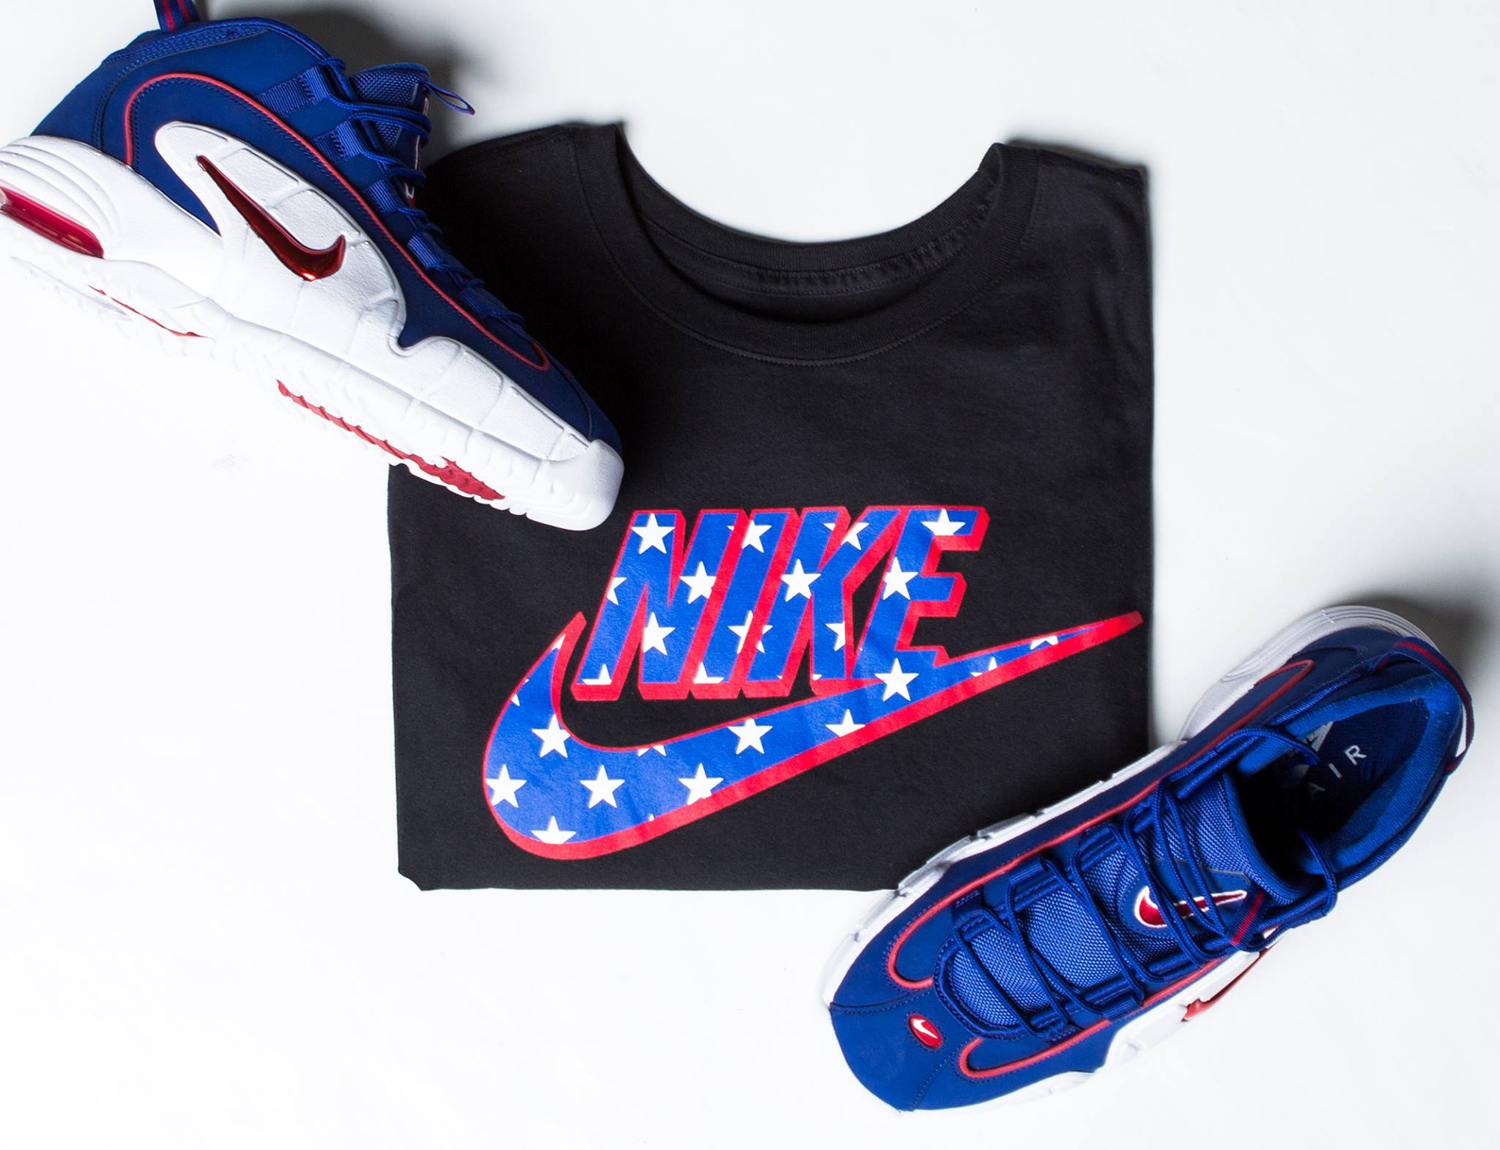 nike-air-max-penny-lil-penny-shirt-match